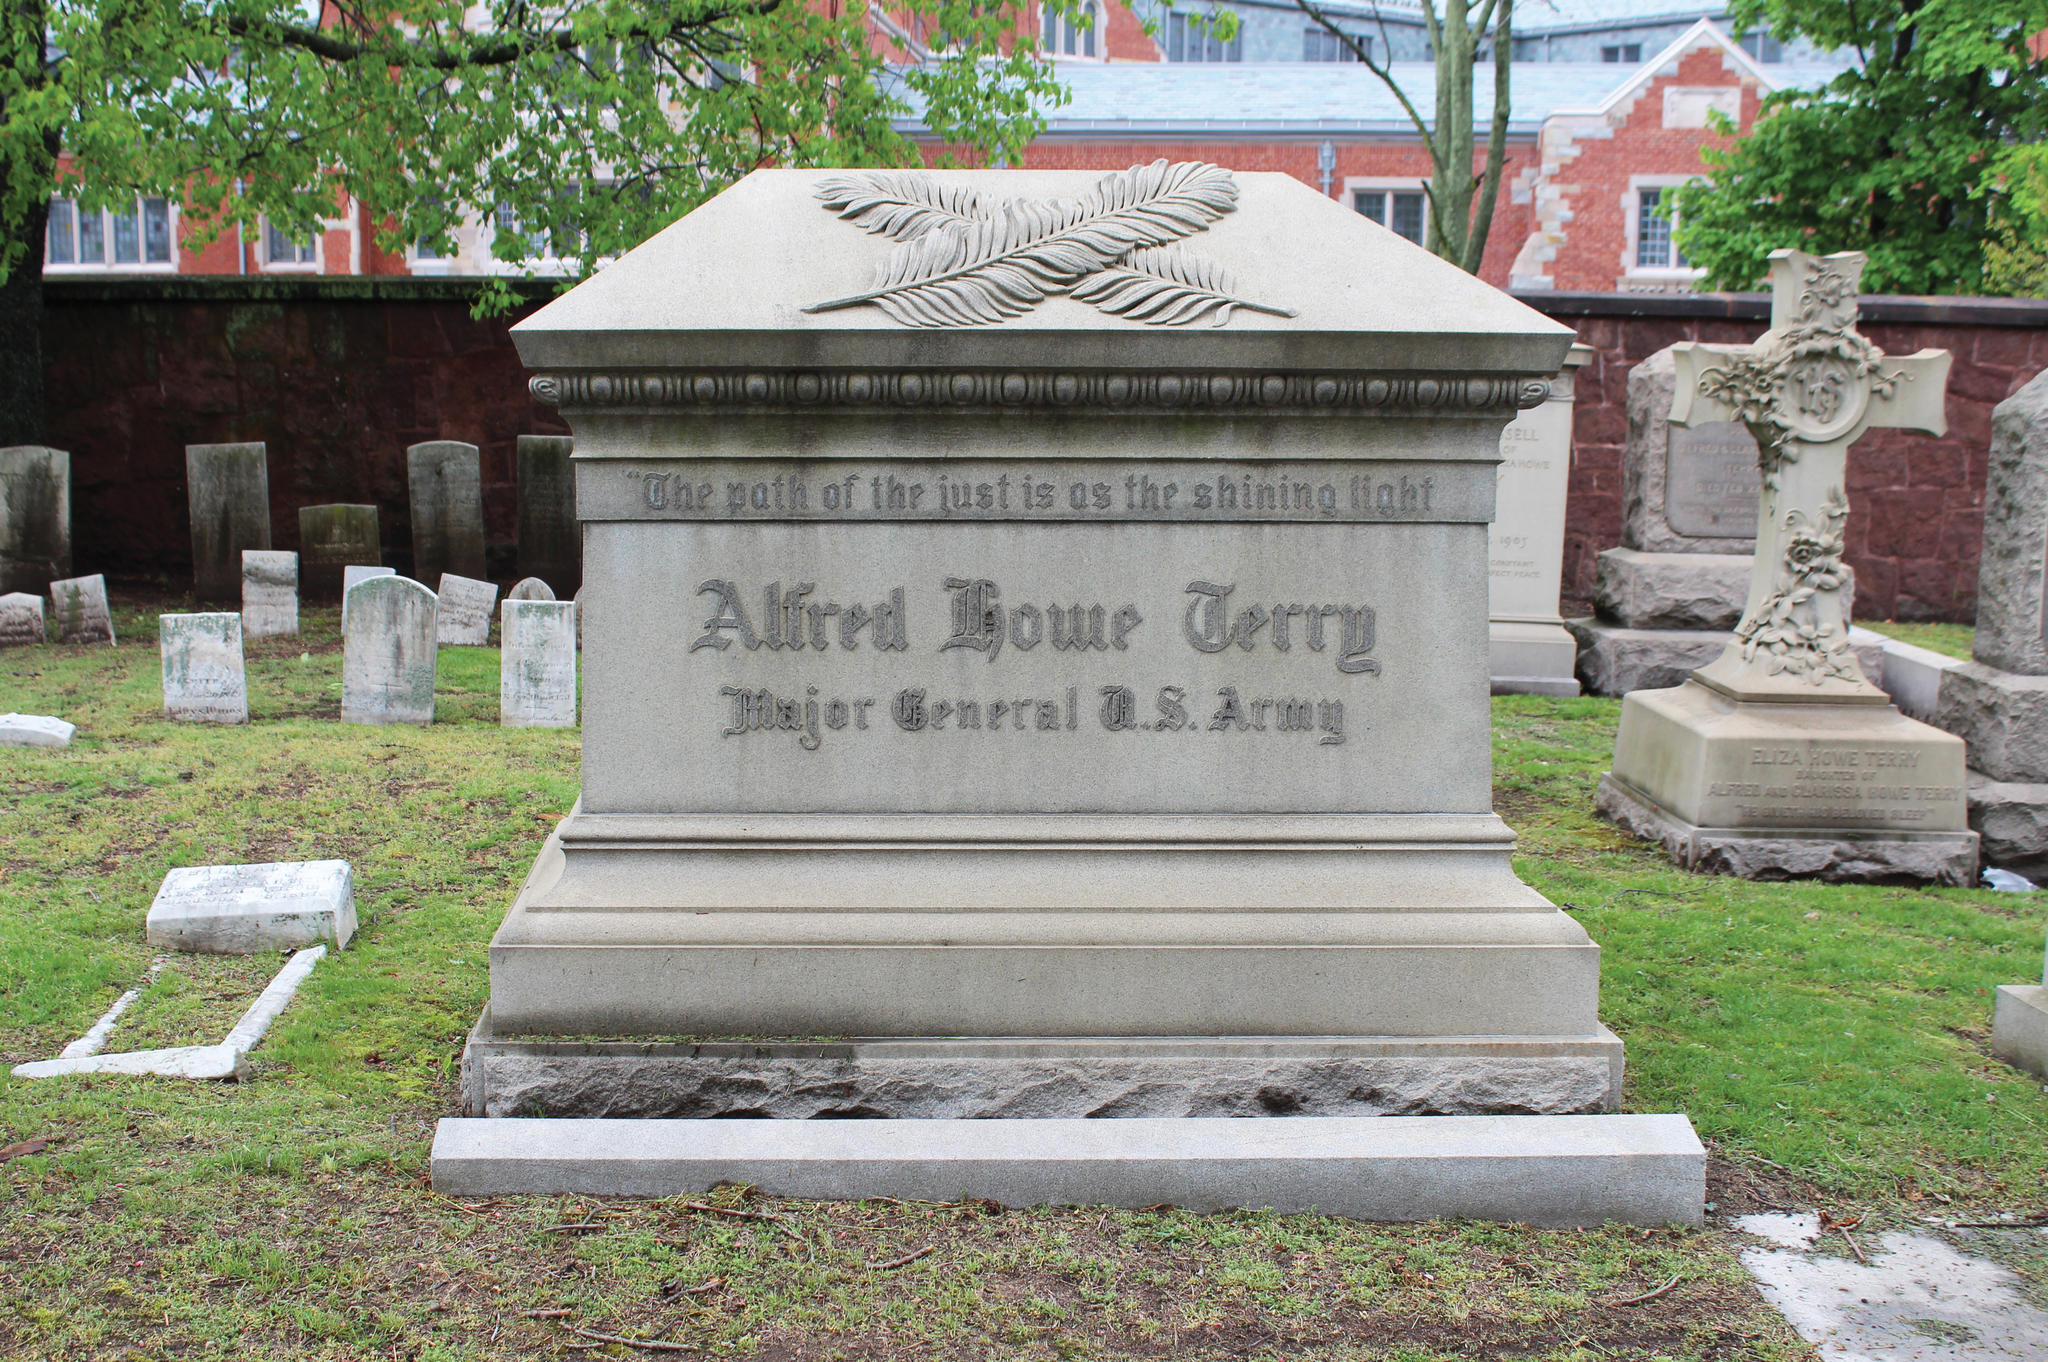 "<span style=""background-color:transparent"">Major General in the U.S. Army. Terry is the highest ranking U.S. Army veteran in Grove Street Cemetery. A graduate of Hopkins School in New Haven, he attended Yale Law School but did not graduate. Although he had no formal military training, when the war started he raised the 2nd Connecticut Infantry Regiment and was appointed its colonel. He led his troops in the capture of Fort Fisher in North Carolina in 1865 and served in the army out west after the war.</span><span style=""background-color:transparent""> </span><span><span style=""background-color:transparent"">Location: 21 Ivy</span></span>"